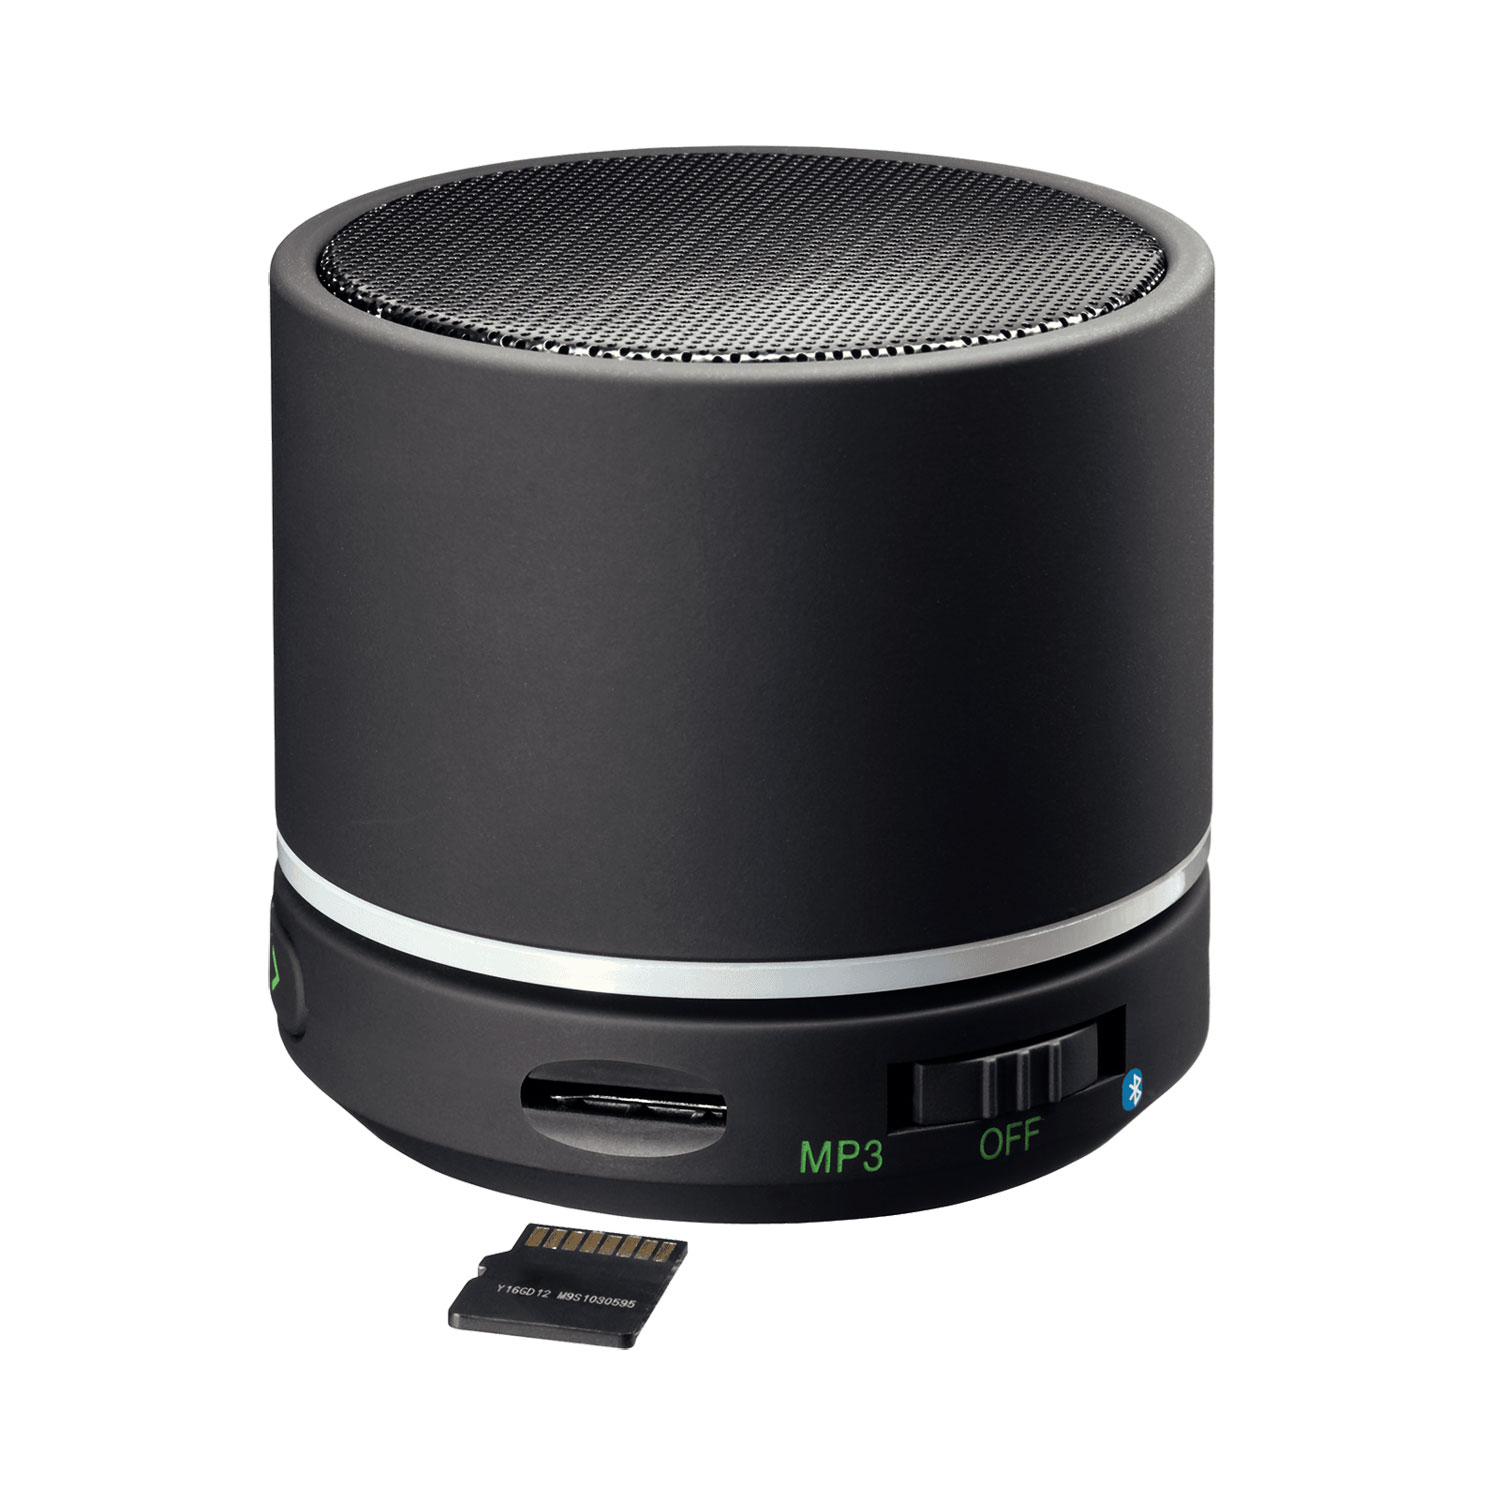 leitz complete mini enceinte portable bluetooth hd dock enceinte bluetooth leitz sur. Black Bedroom Furniture Sets. Home Design Ideas